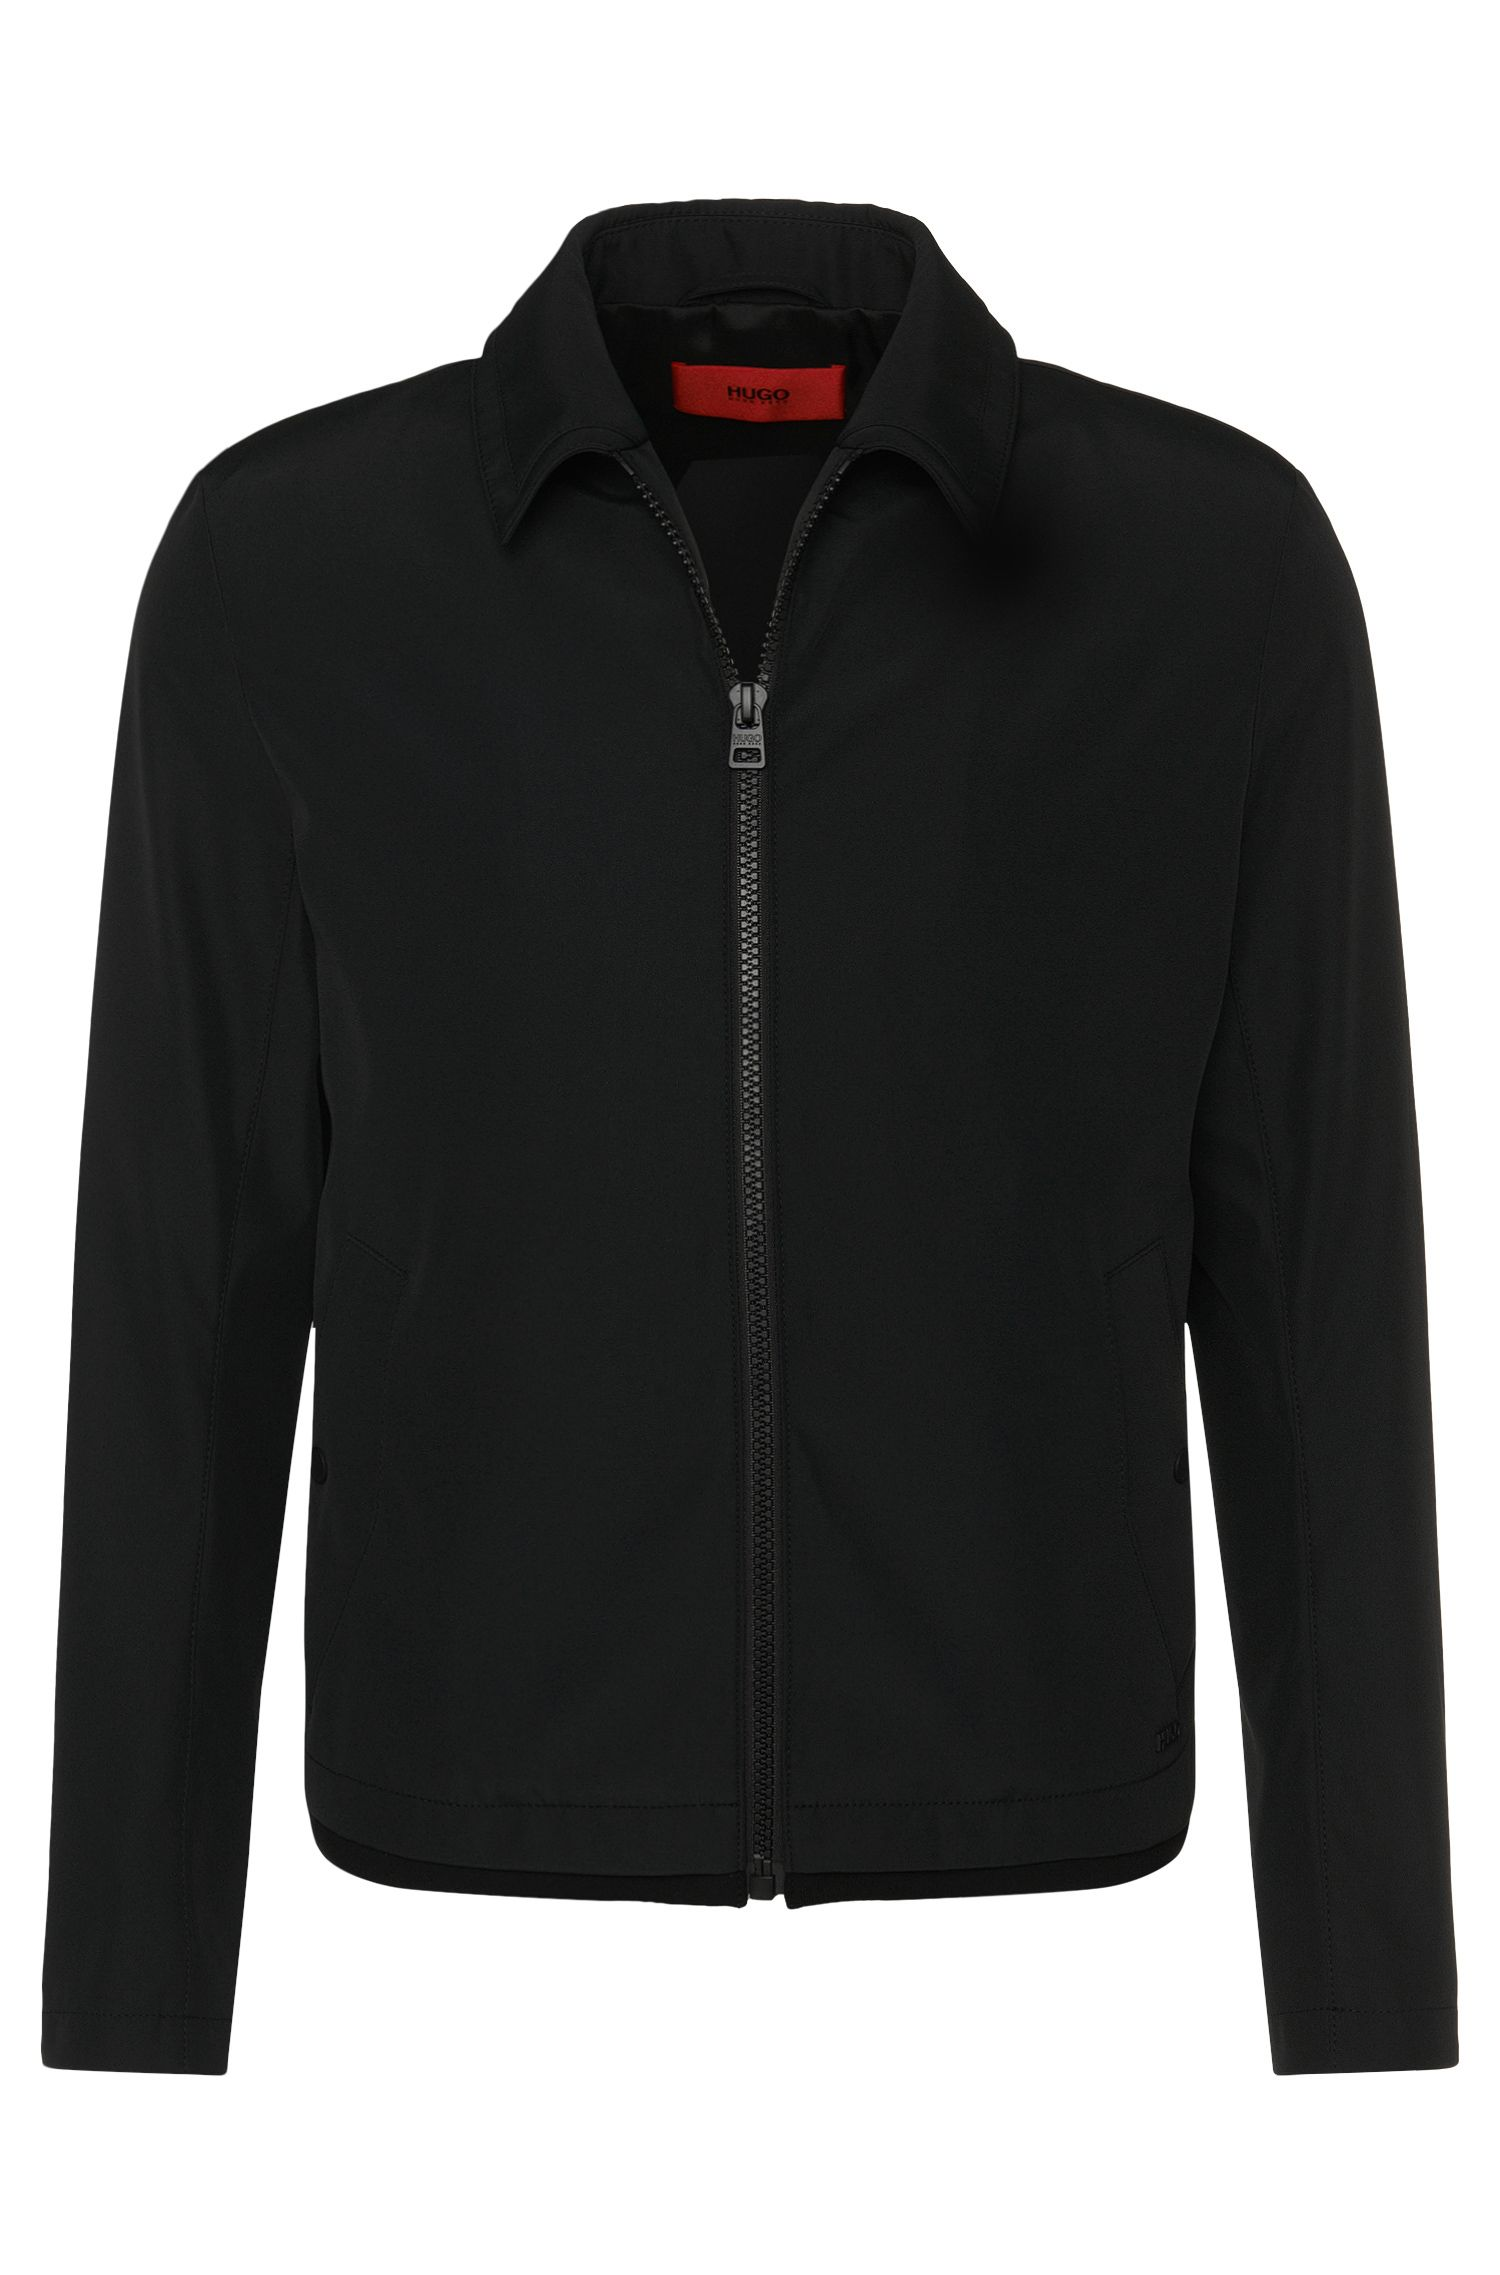 'Banzot' | Straight Fit Water-Repellent Jacket